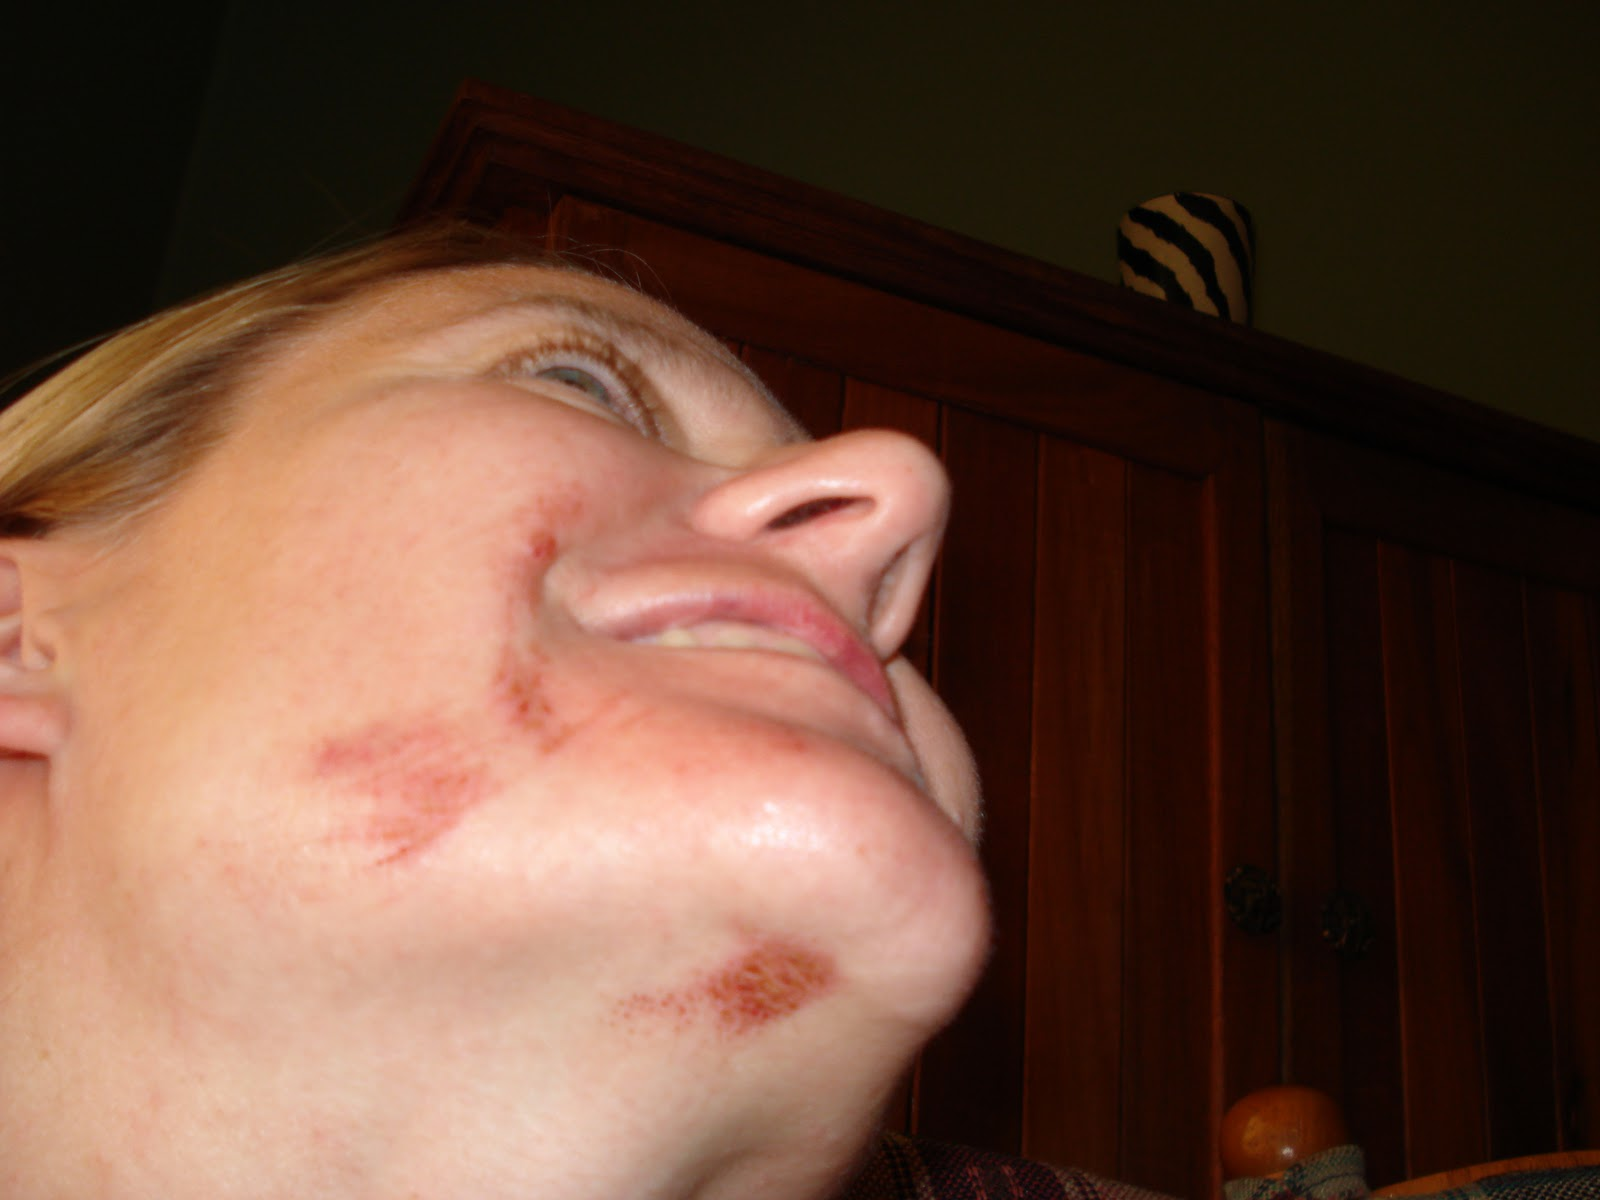 Wife facial burn pictures